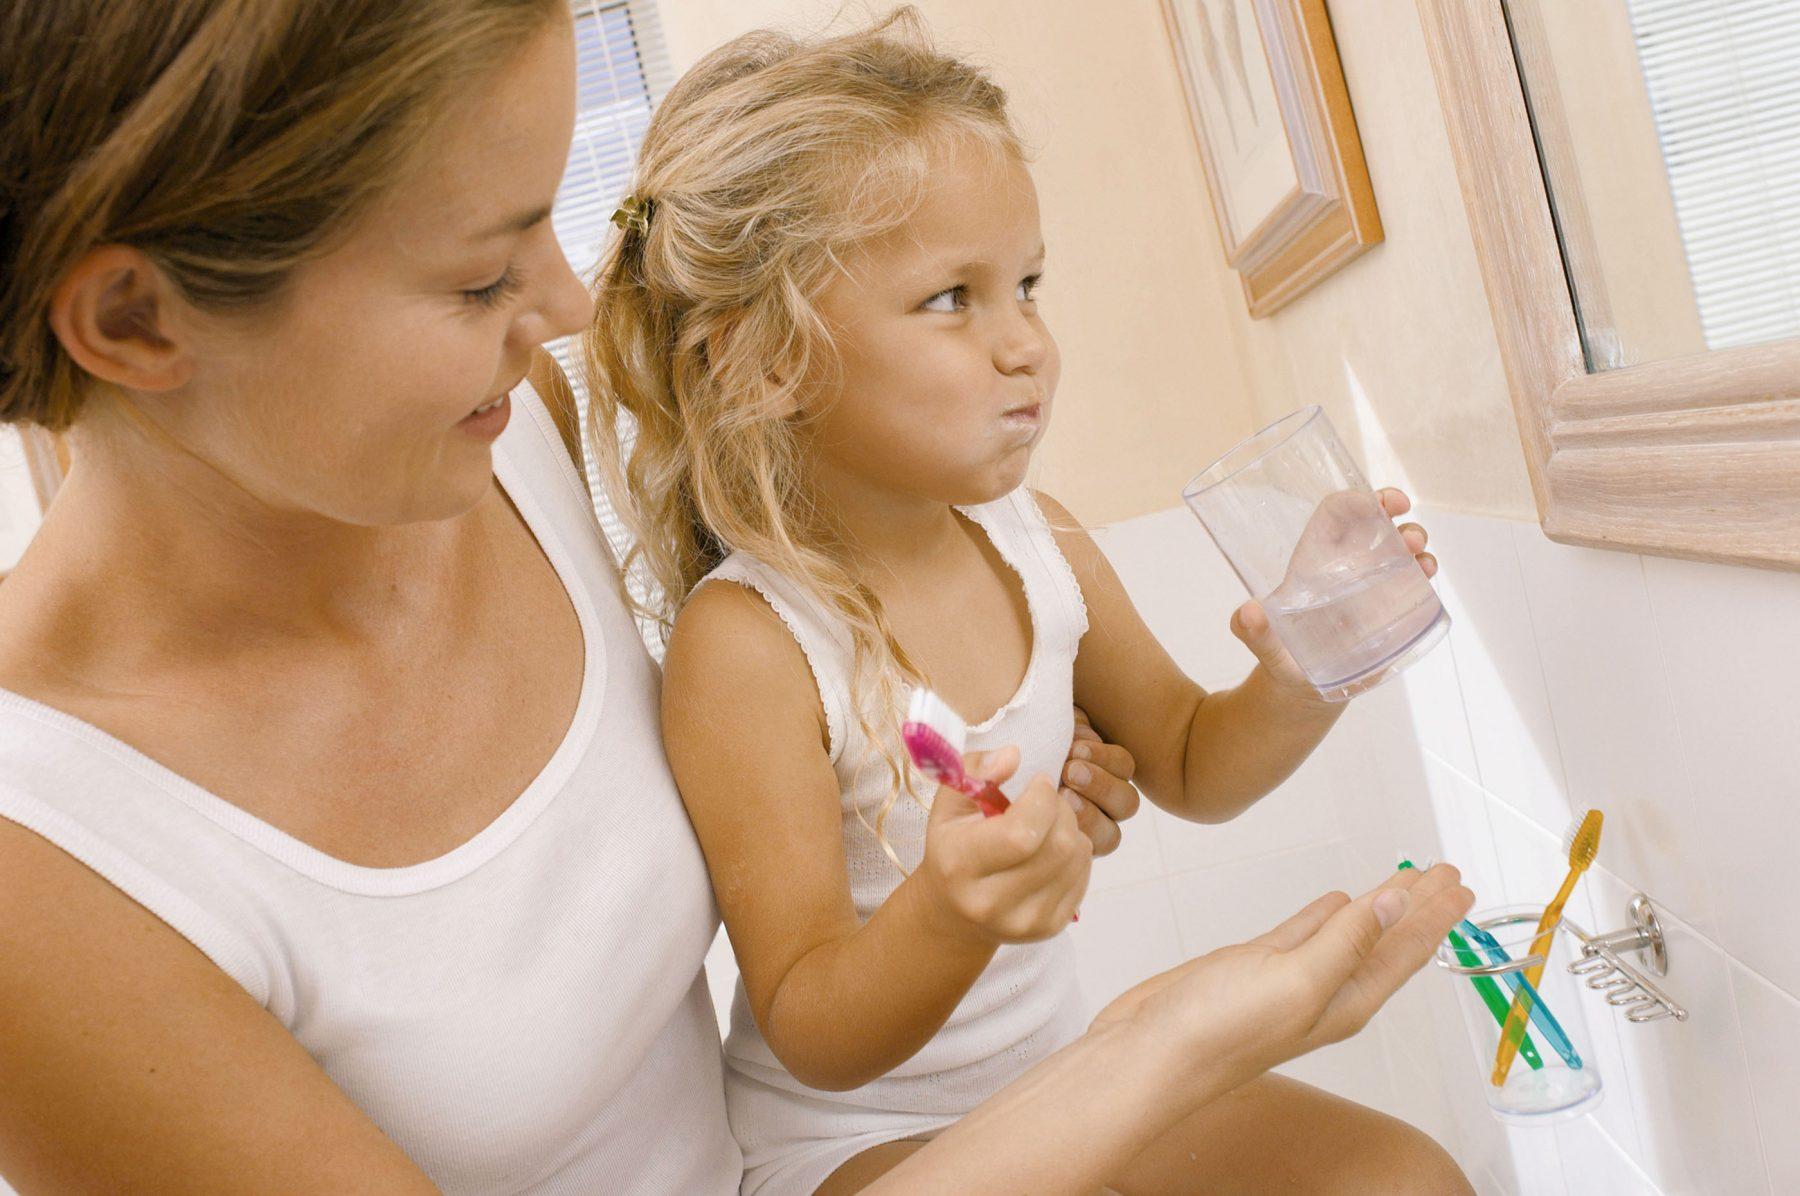 IS065-057_Mother helping daughter brush teeth, licensed picture